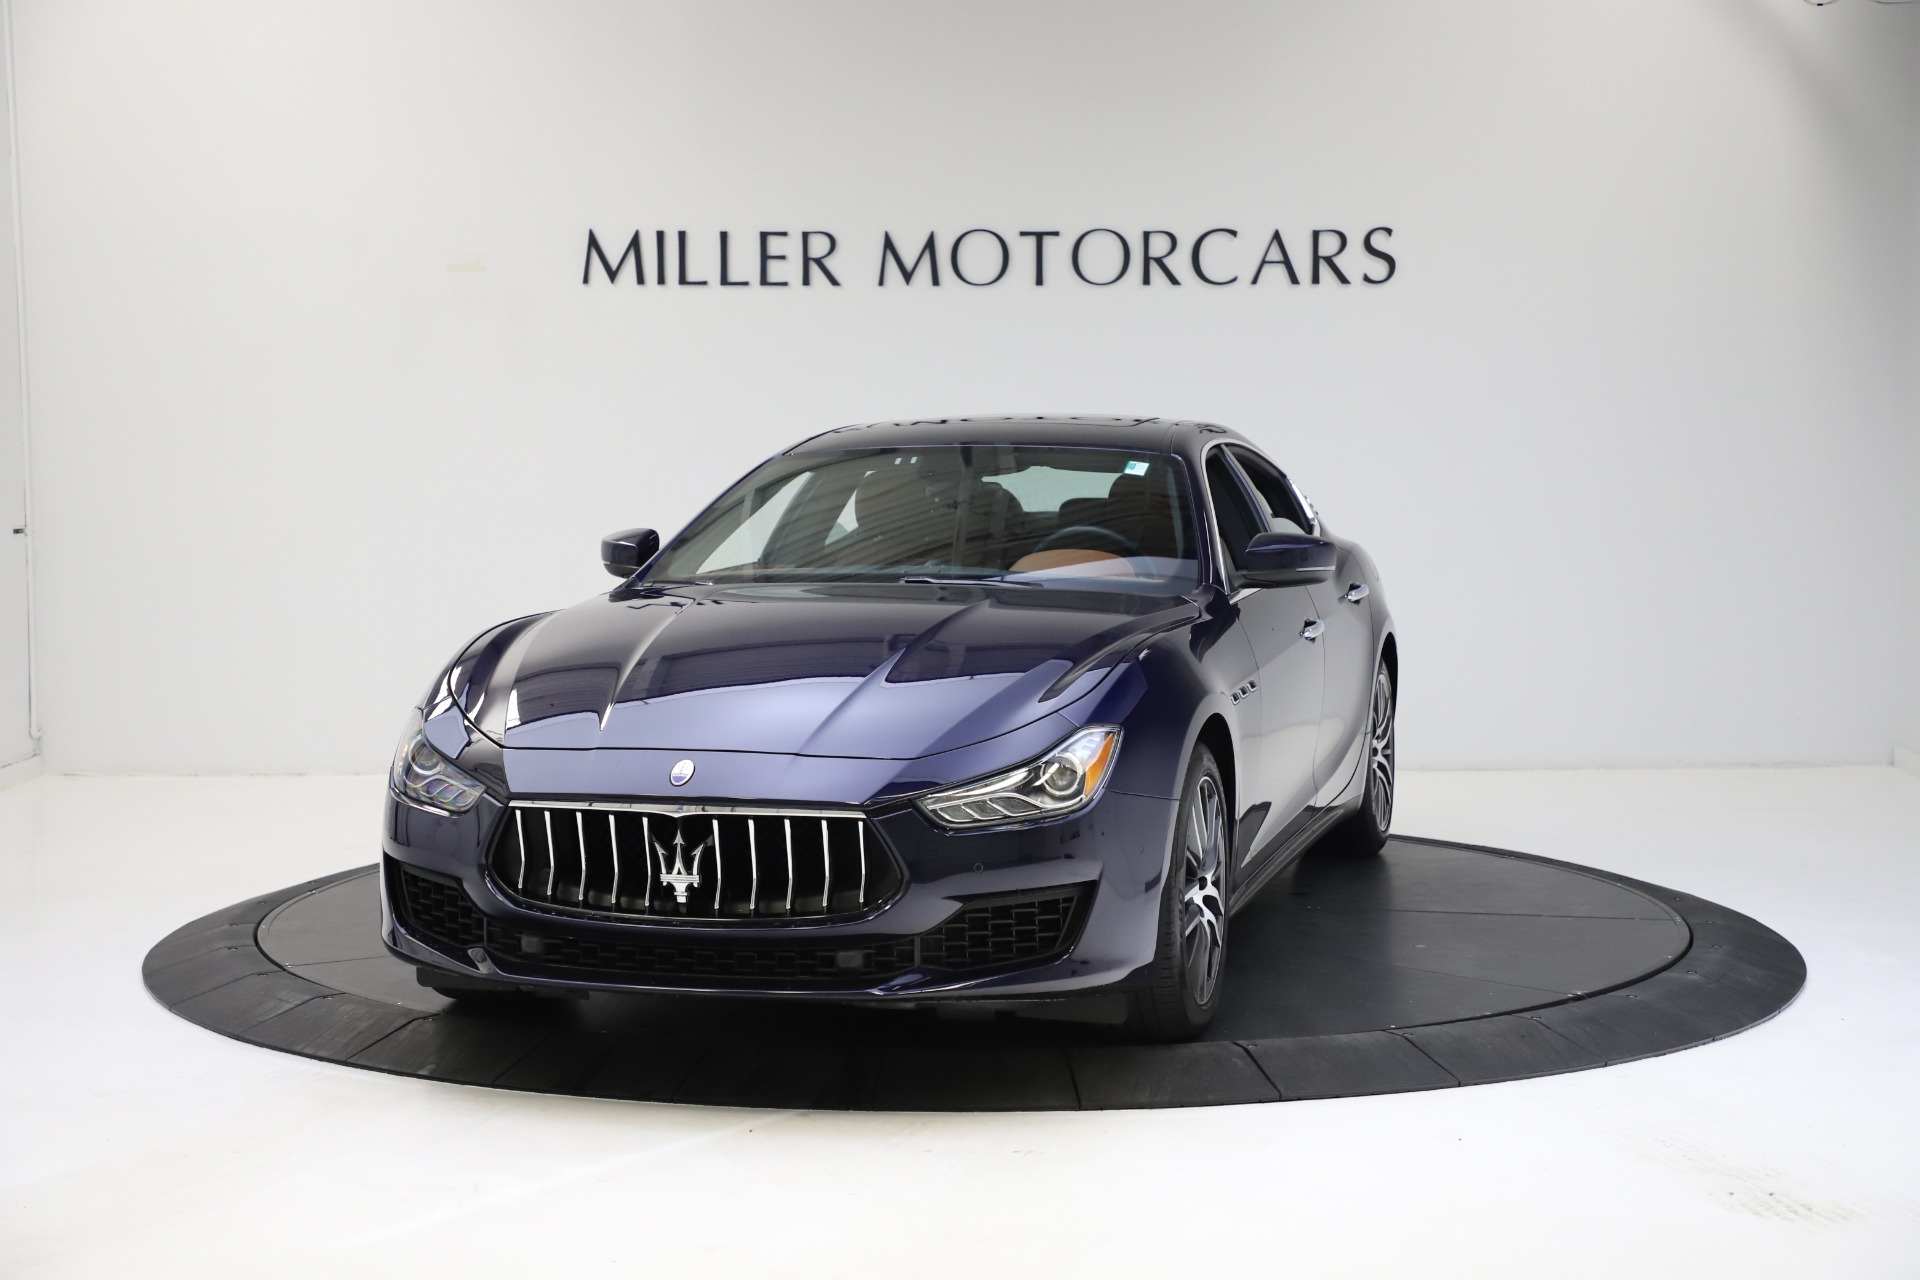 Used 2018 Maserati Ghibli S Q4 for sale $53,900 at Bentley Greenwich in Greenwich CT 06830 1